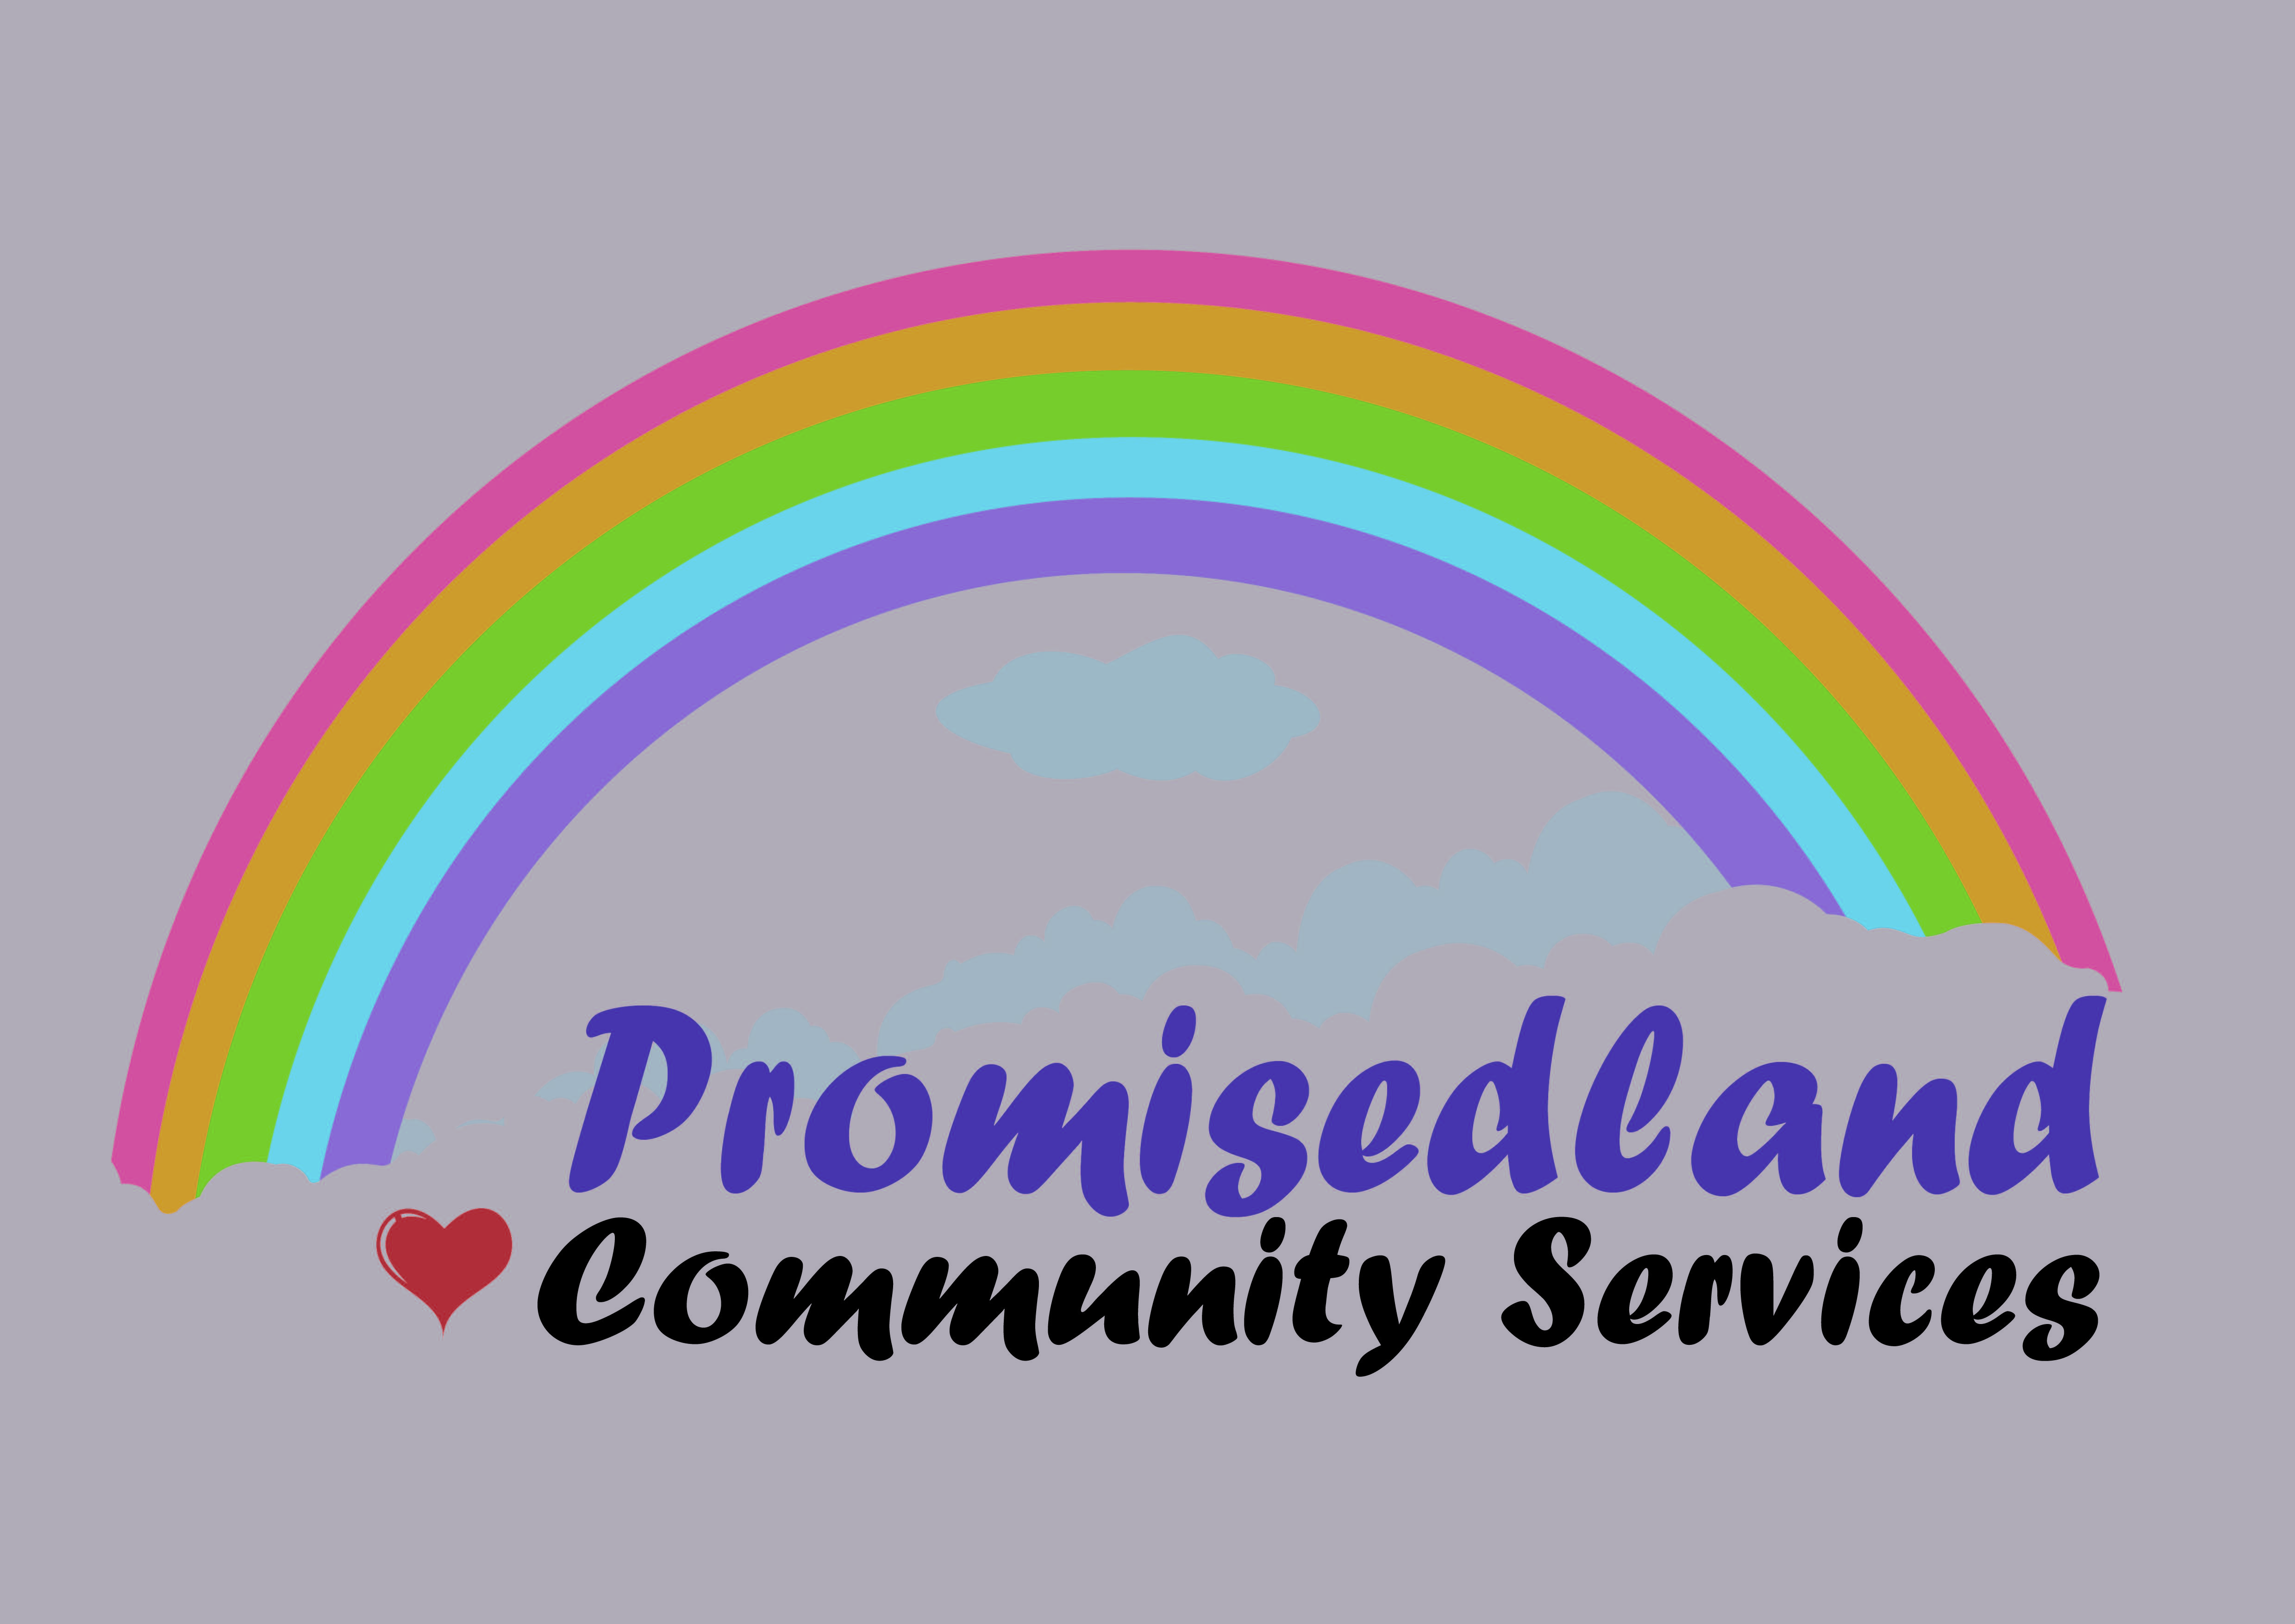 Promisedland Community Services